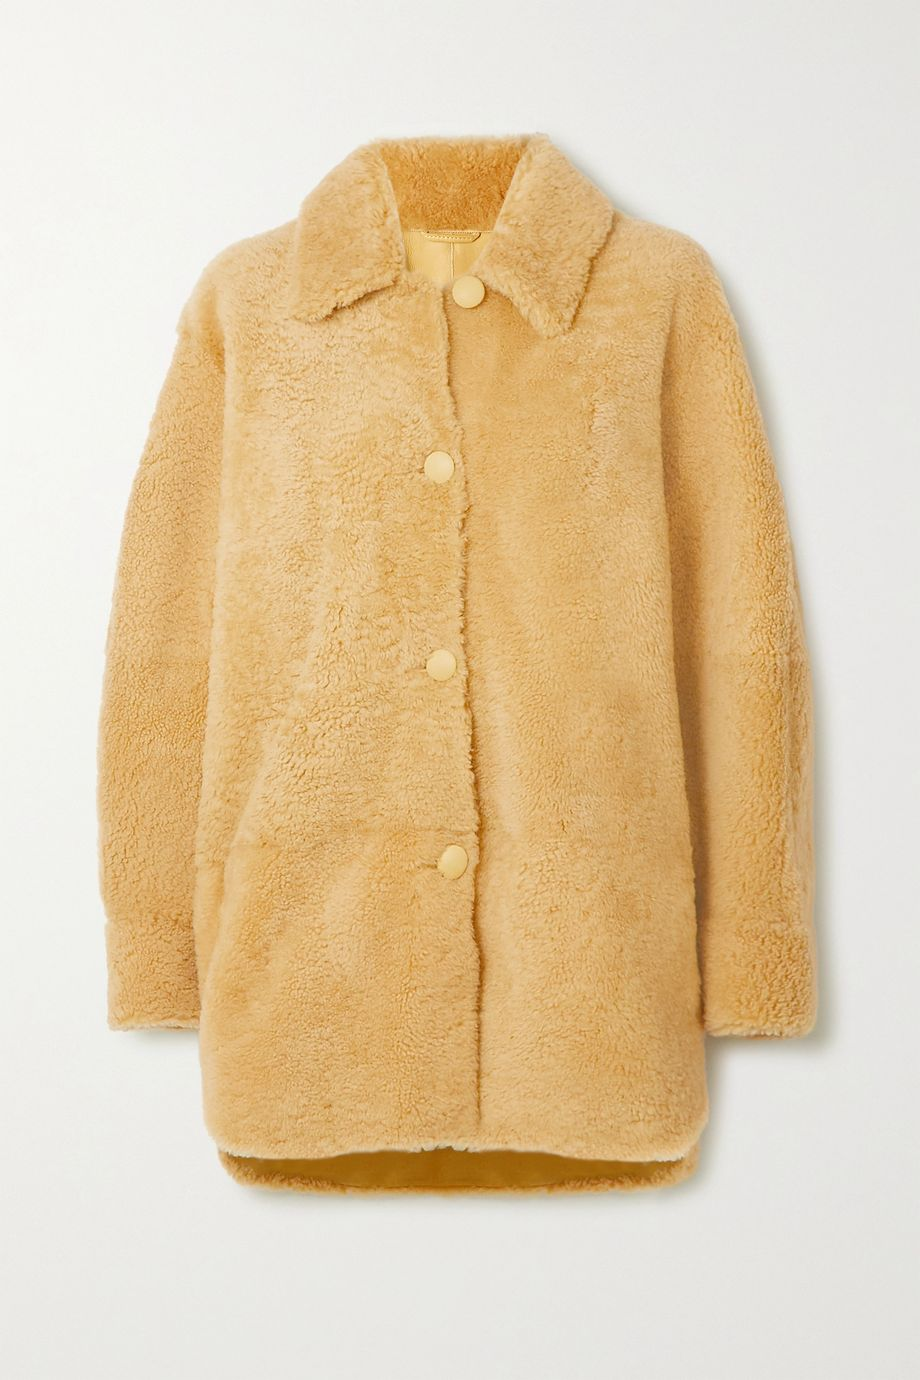 Isabel Marant Sarvey shearling jacket